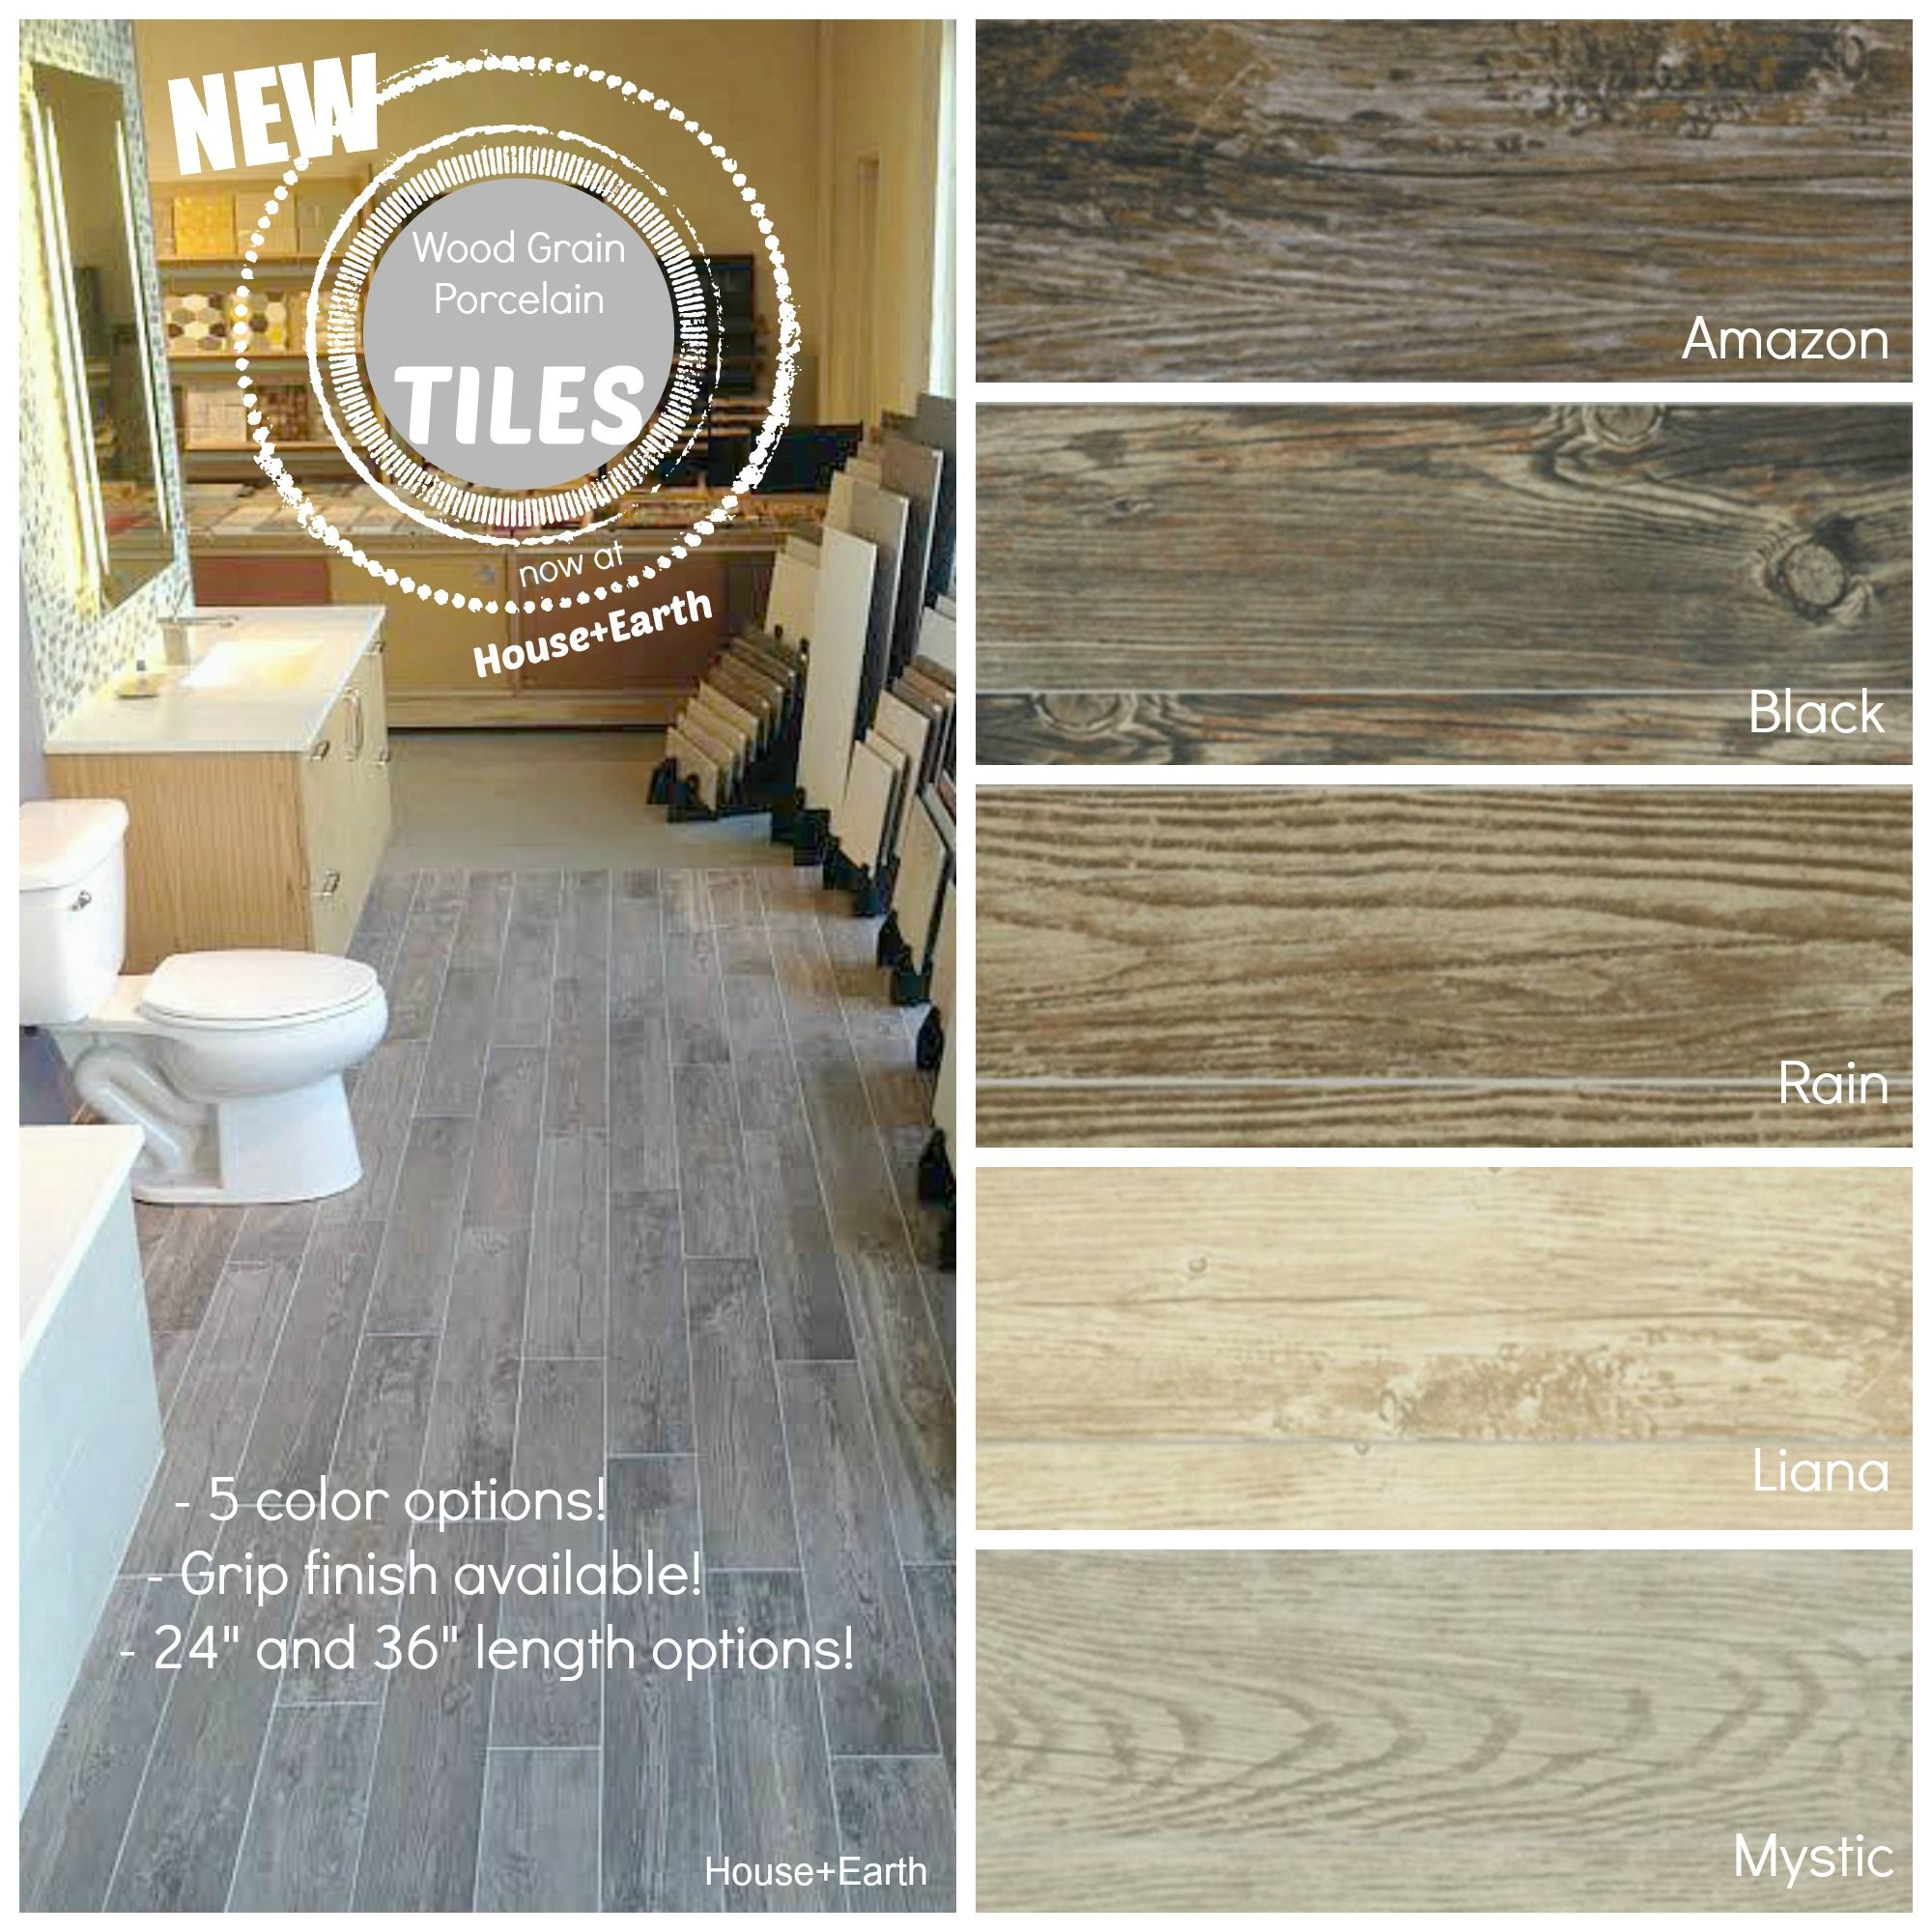 Wood Printed Porcelain Tiles Available At House Earth Woodtile Houseandearth